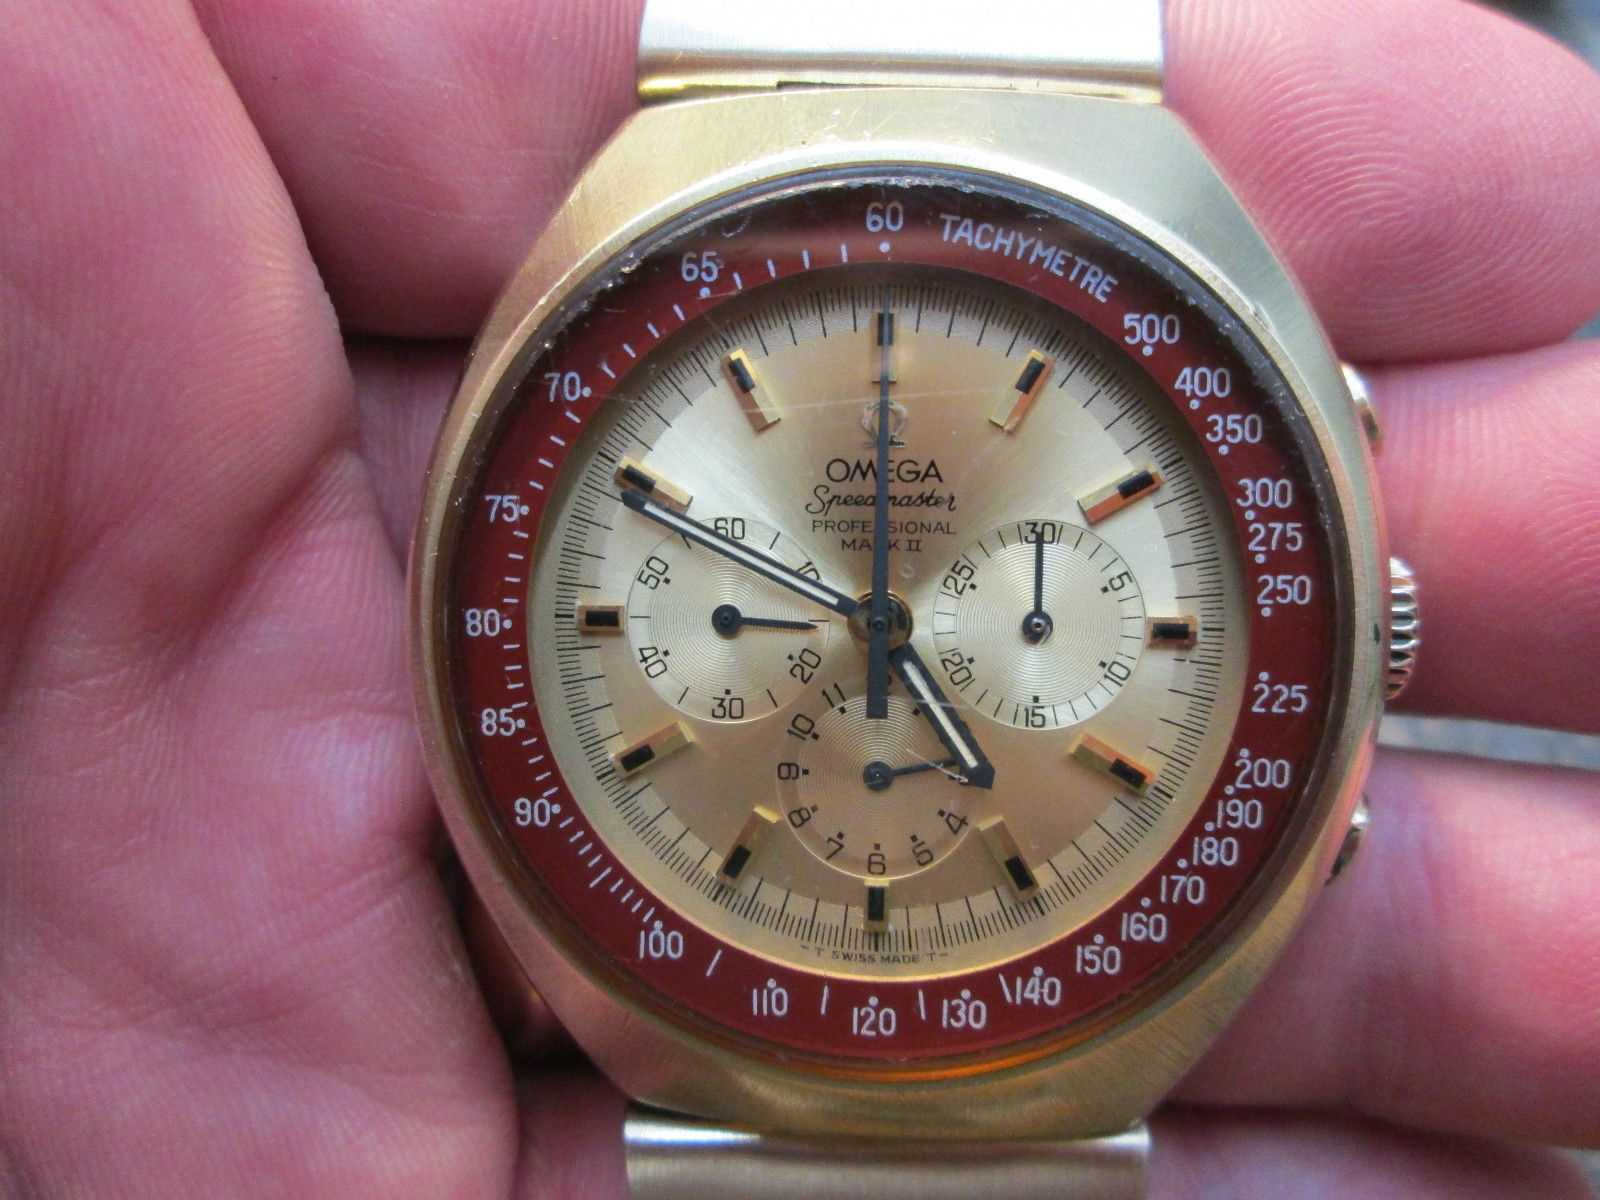 Omega Chronograph Speedmaster Professional Mark II Running Watch w Original Band | eBay